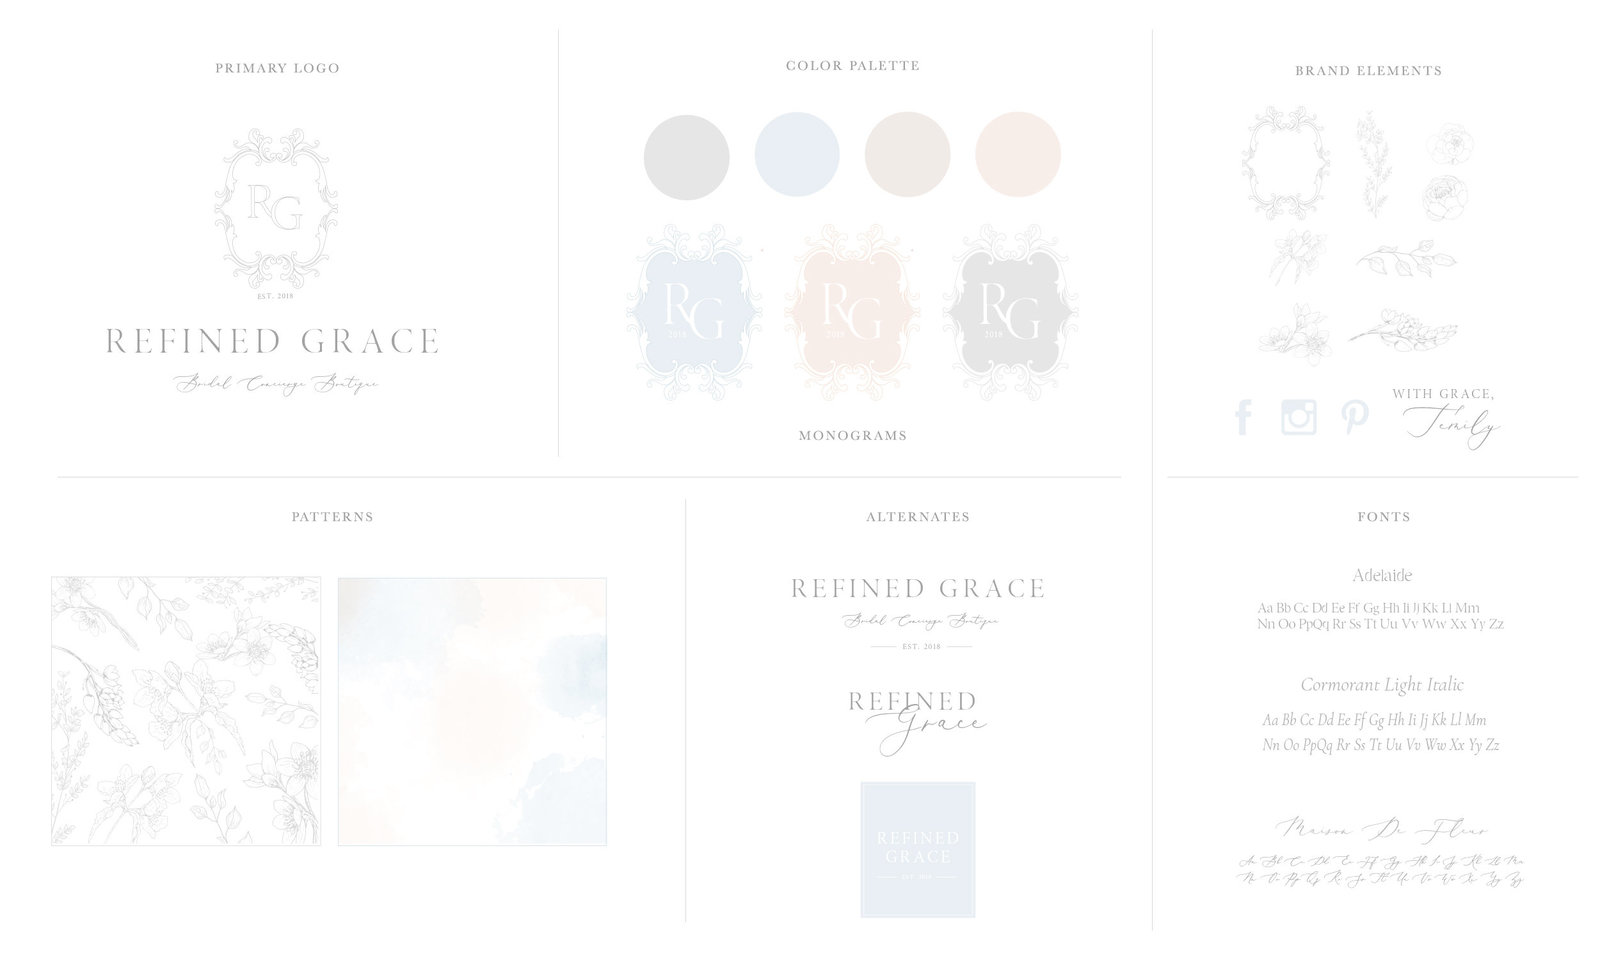 refined-grace-board